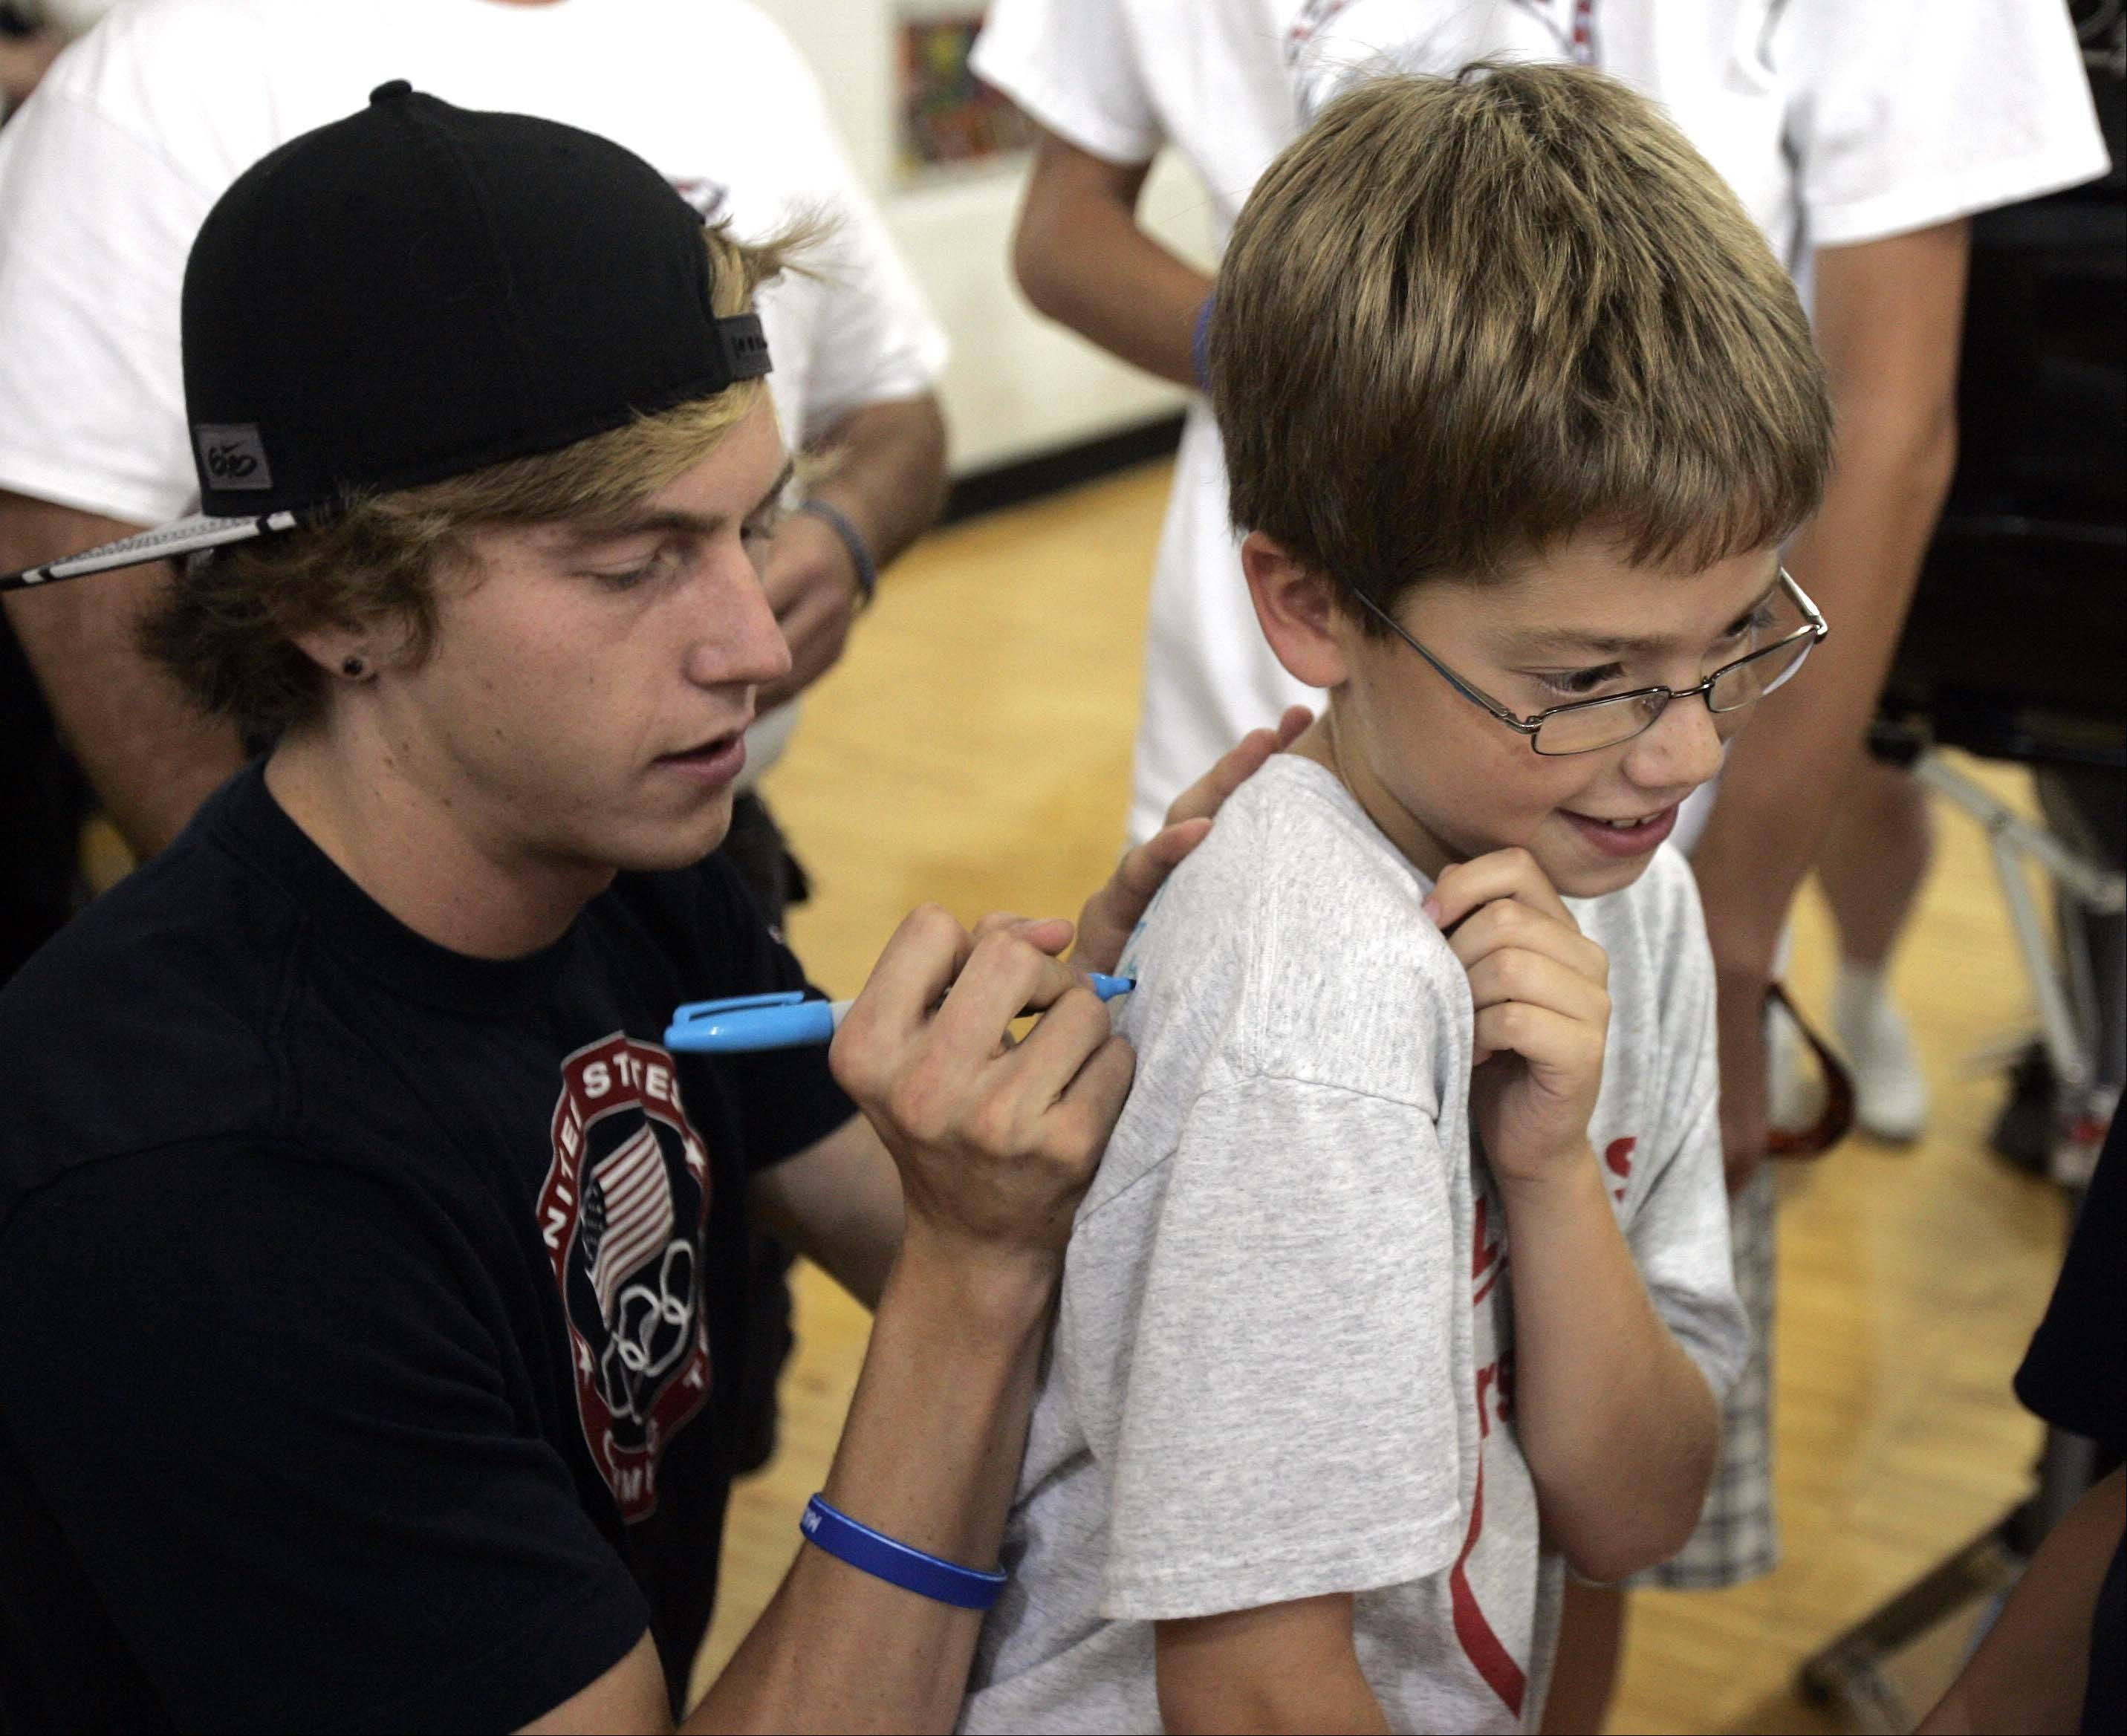 Nine-year-old Logan Marx of Algonquin gets his shirt signed by Olympian Evan Jager who returned to H.D. Jacobs High School in Algonquin Wednesday September 5, 2012.